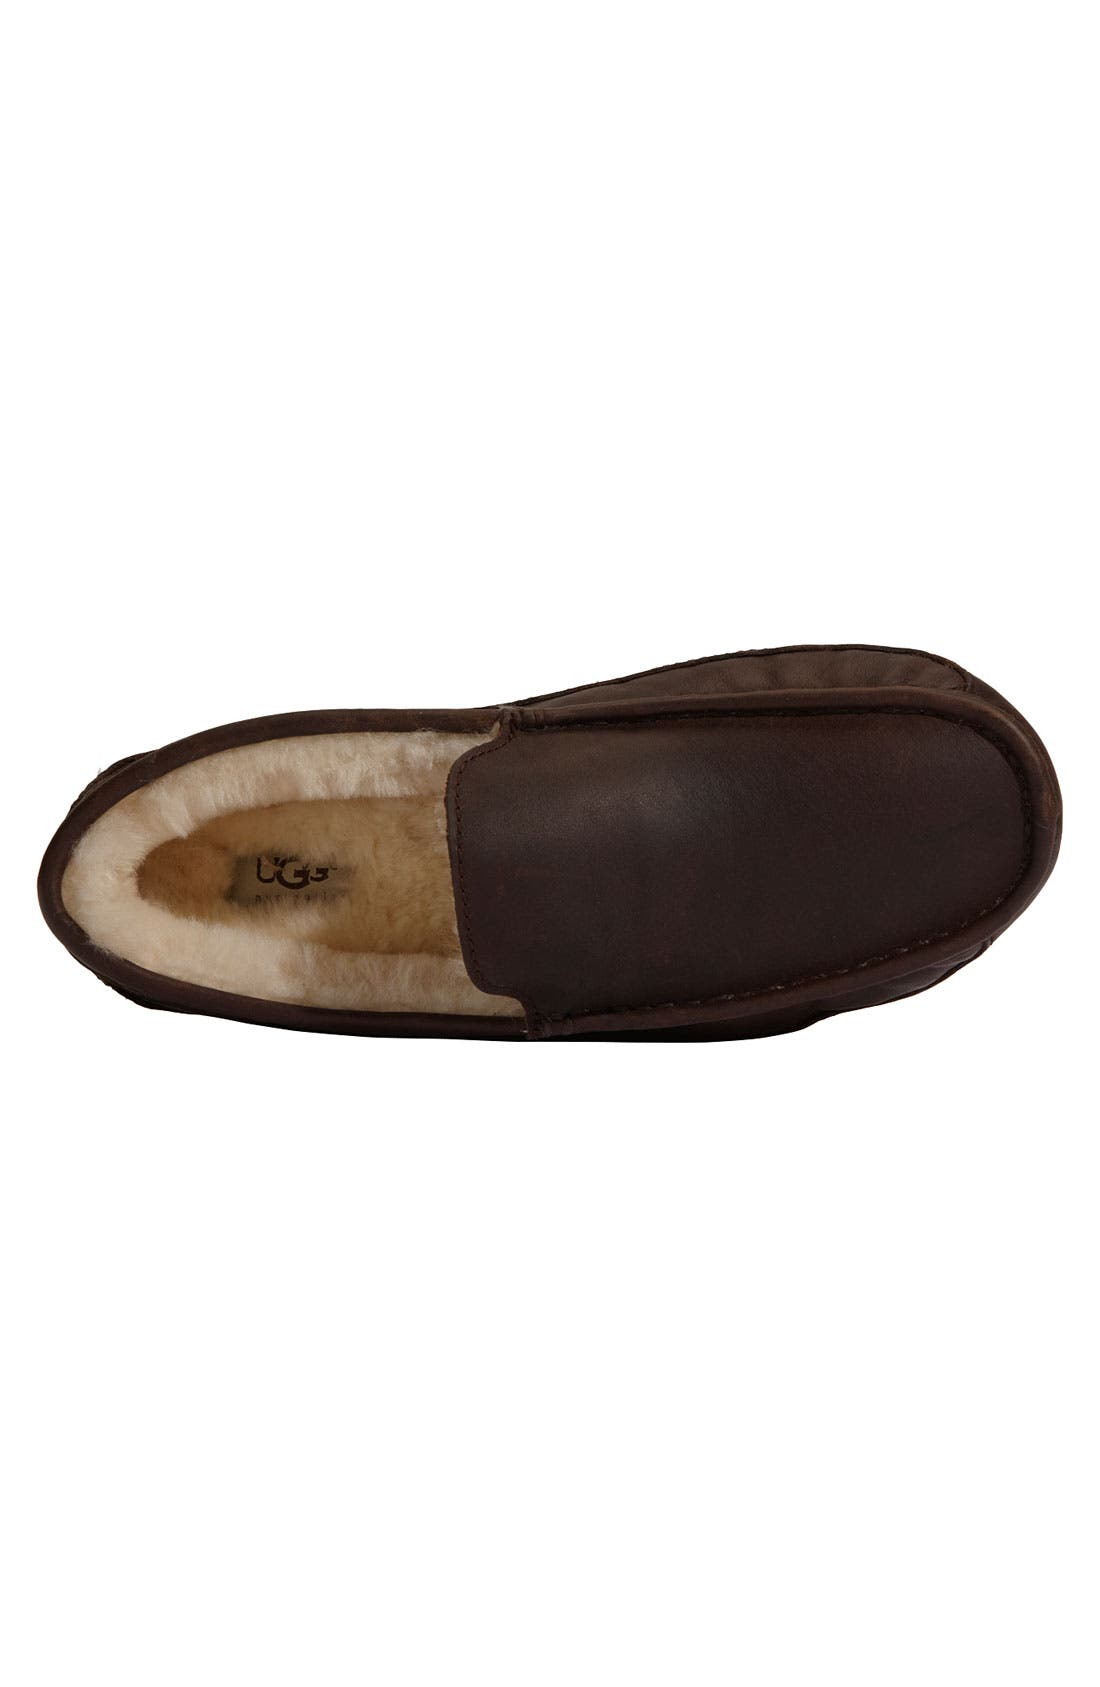 Alternate Image 3  - UGG® Ascot Leather Slipper (Men)